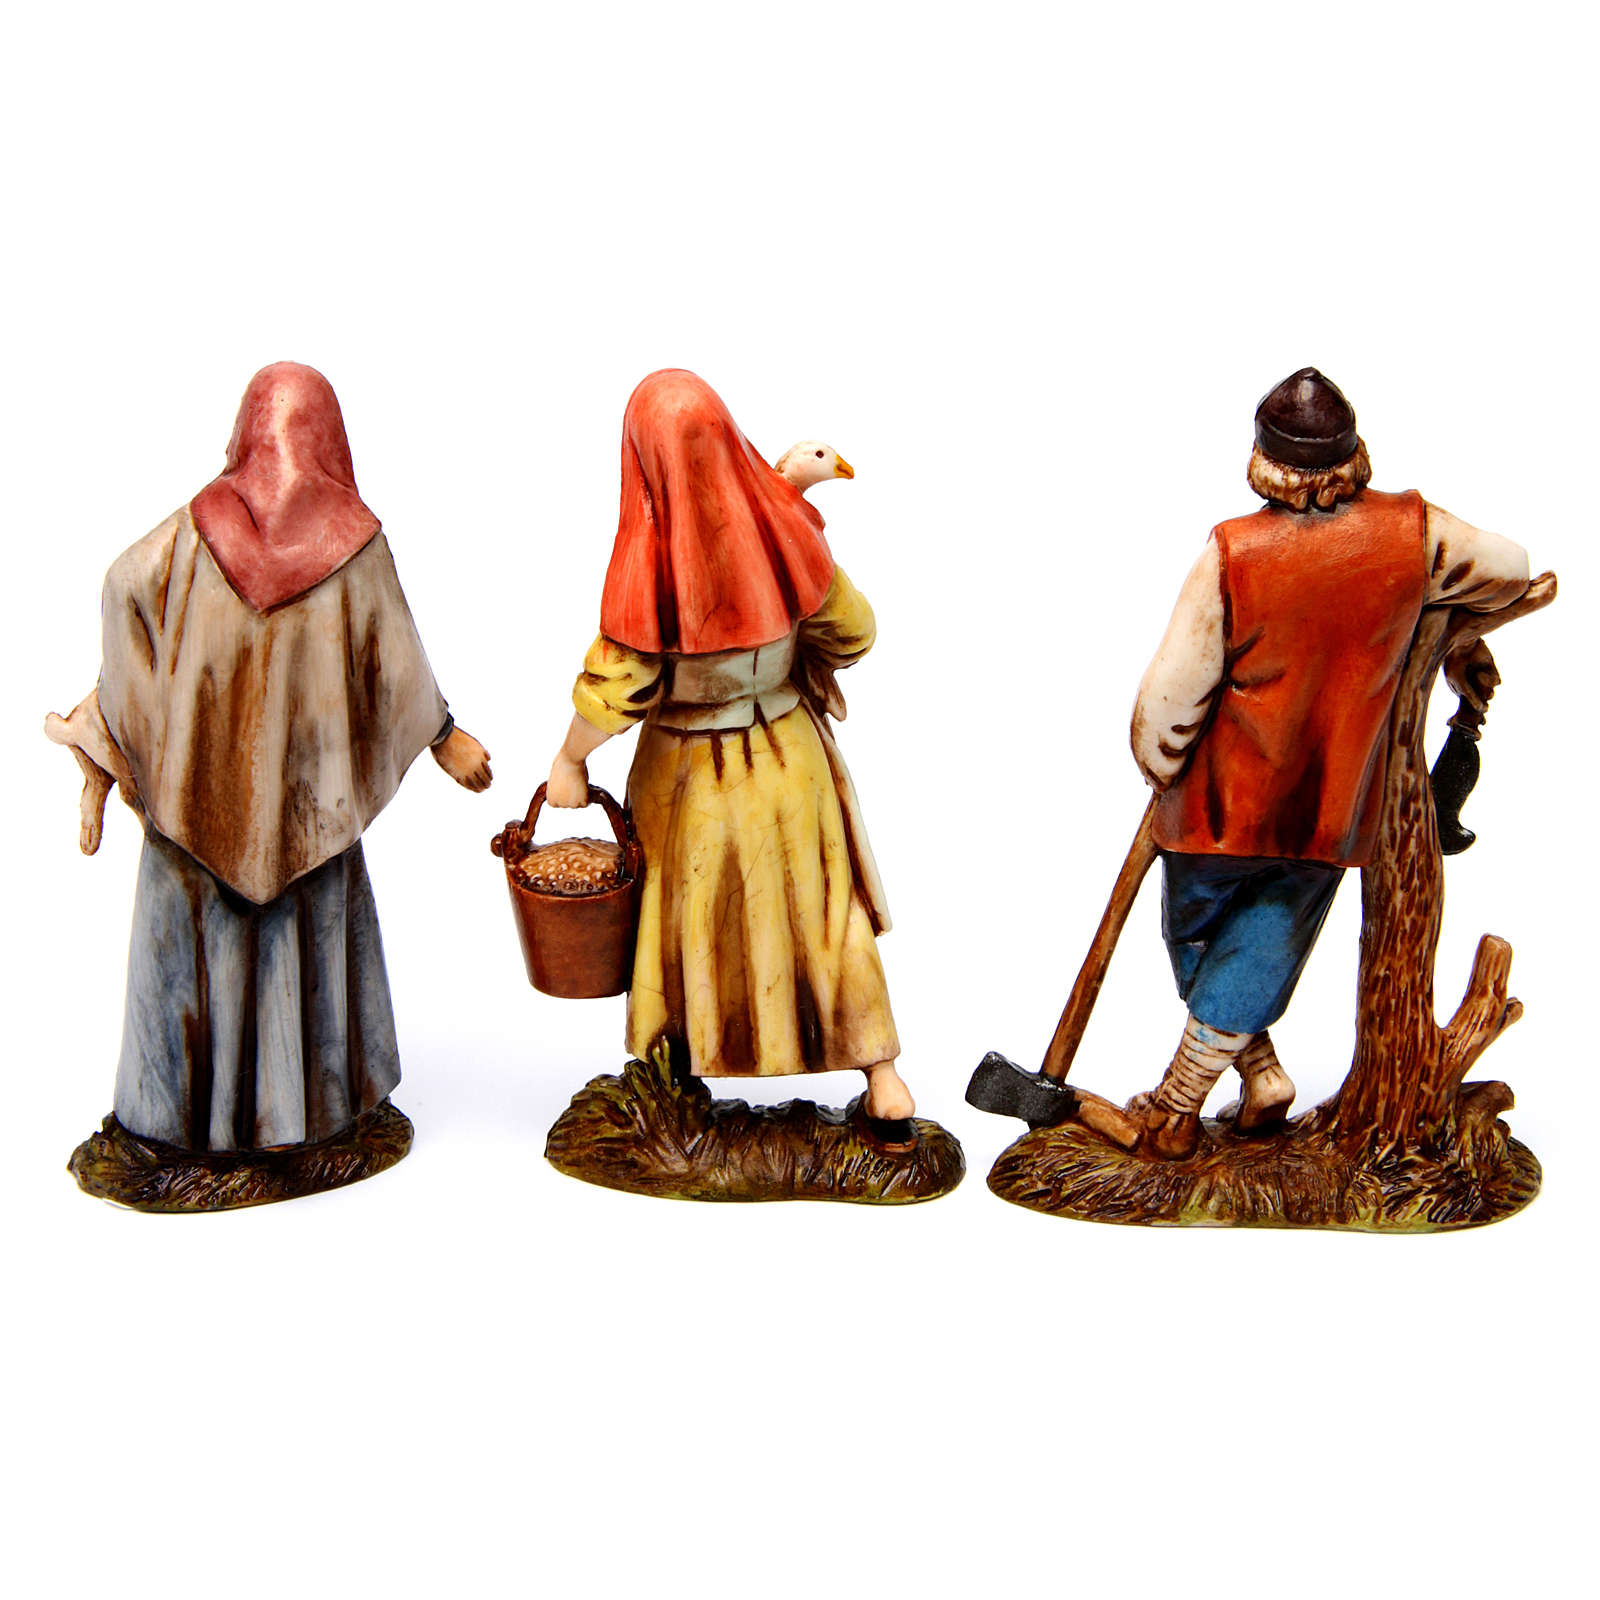 Lumberjack and Woman with Goose and Woman with Rabbit 10 cm Moranduzzo historic style 4